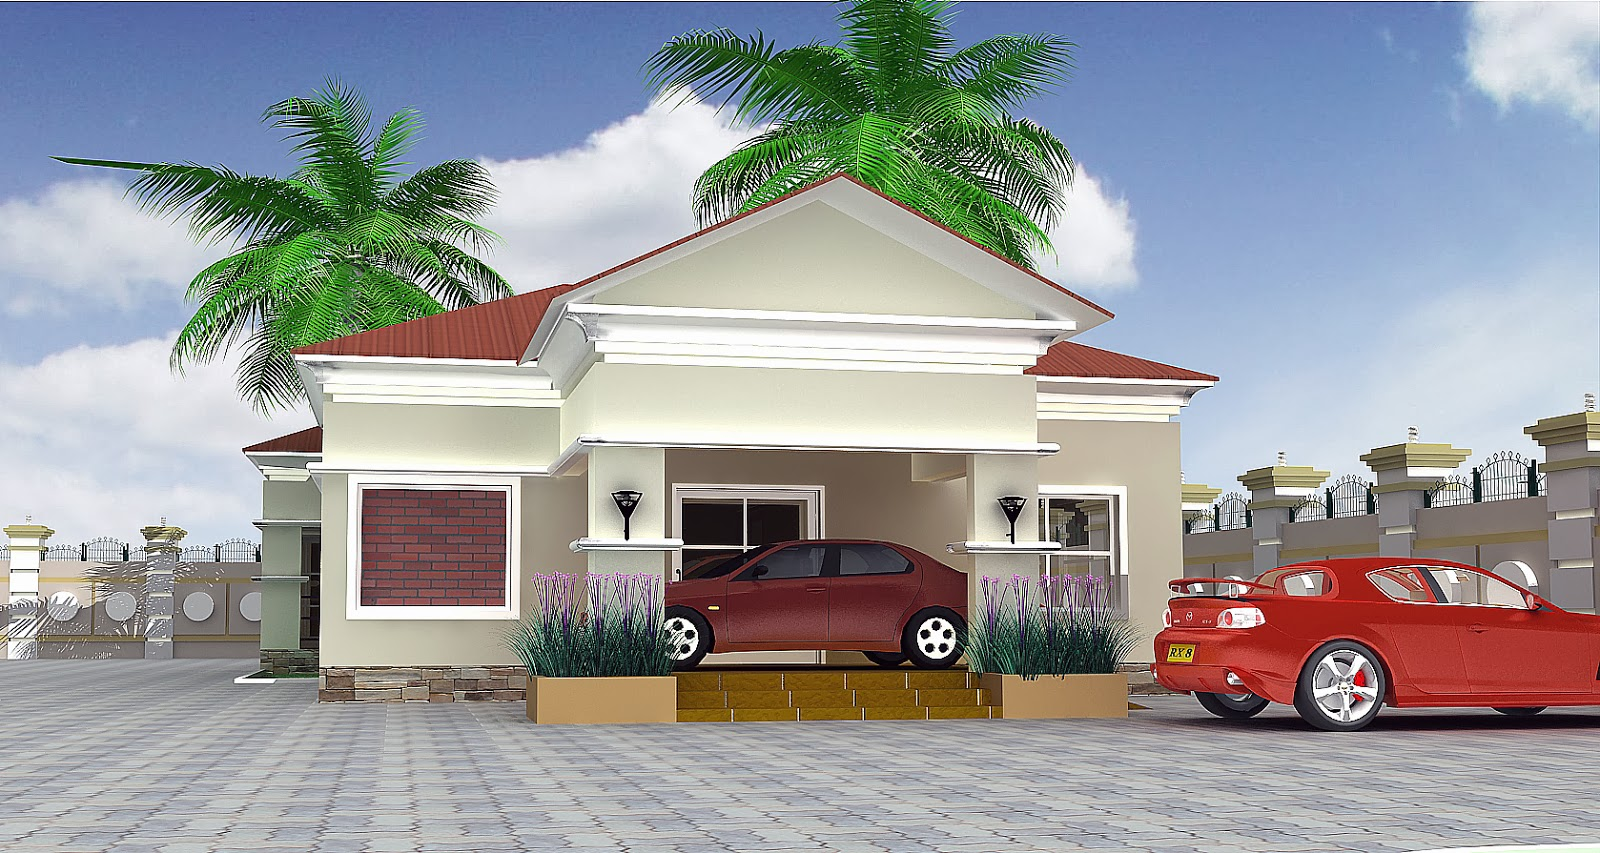 A 3 Bedroom Bungalow Designed With AutoCAD 2D ArchiCAD 3D Modelling And 3Dmax Rendering